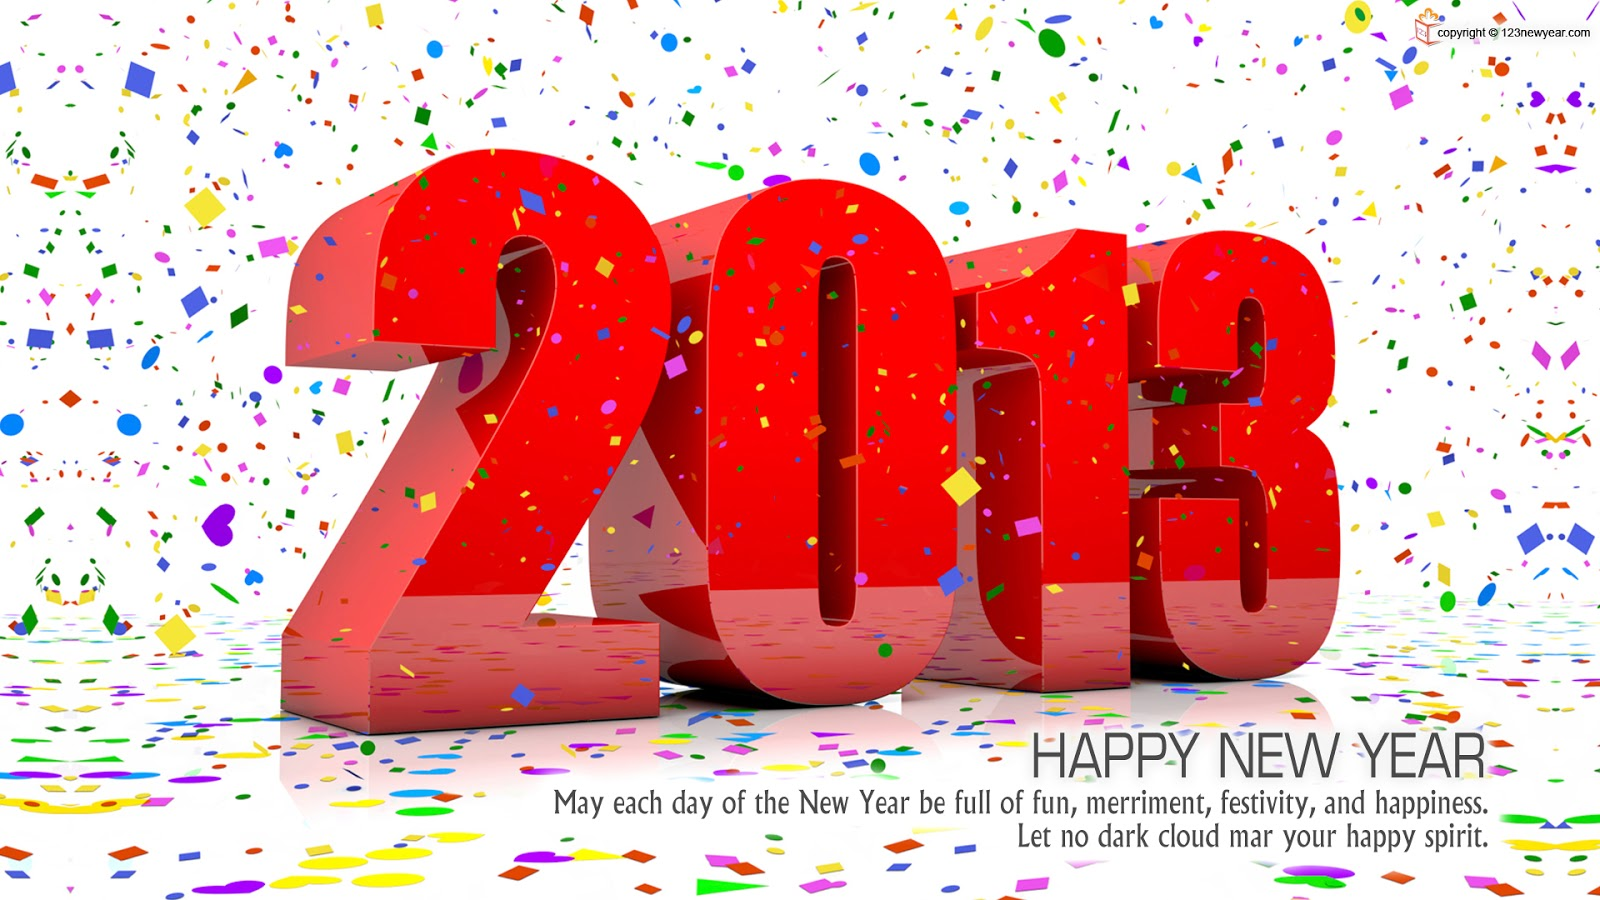 Free Wallpaper 3D Happy new year 2013 3D